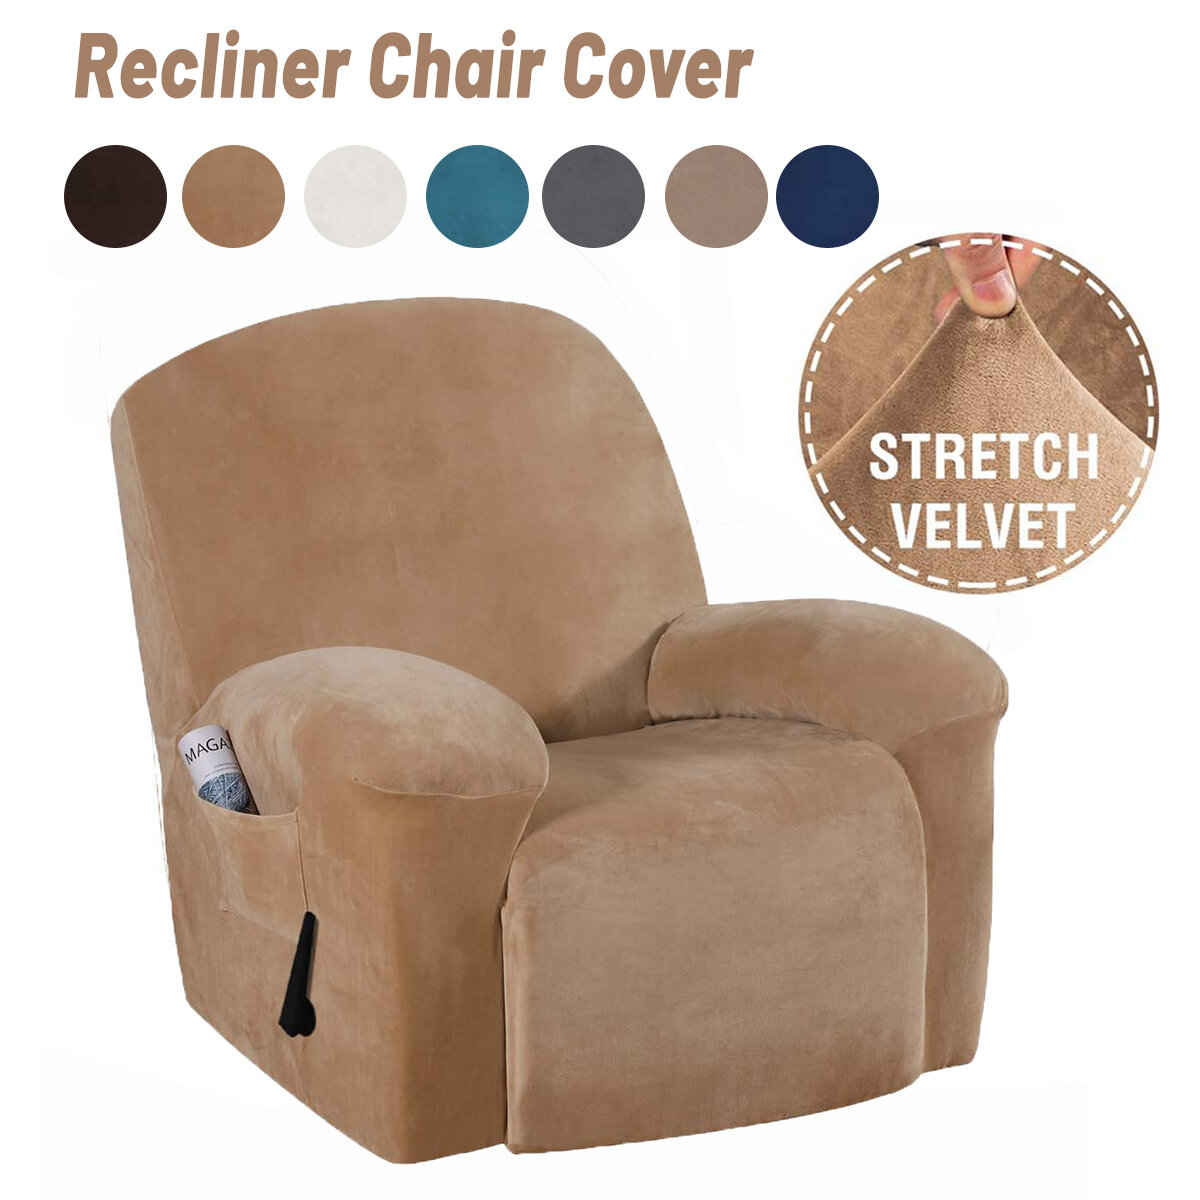 Velvet Soft Stretch Recliner Chair Cover Slipcover Full Coverage Protector With Pockets Dustproof Waterproo